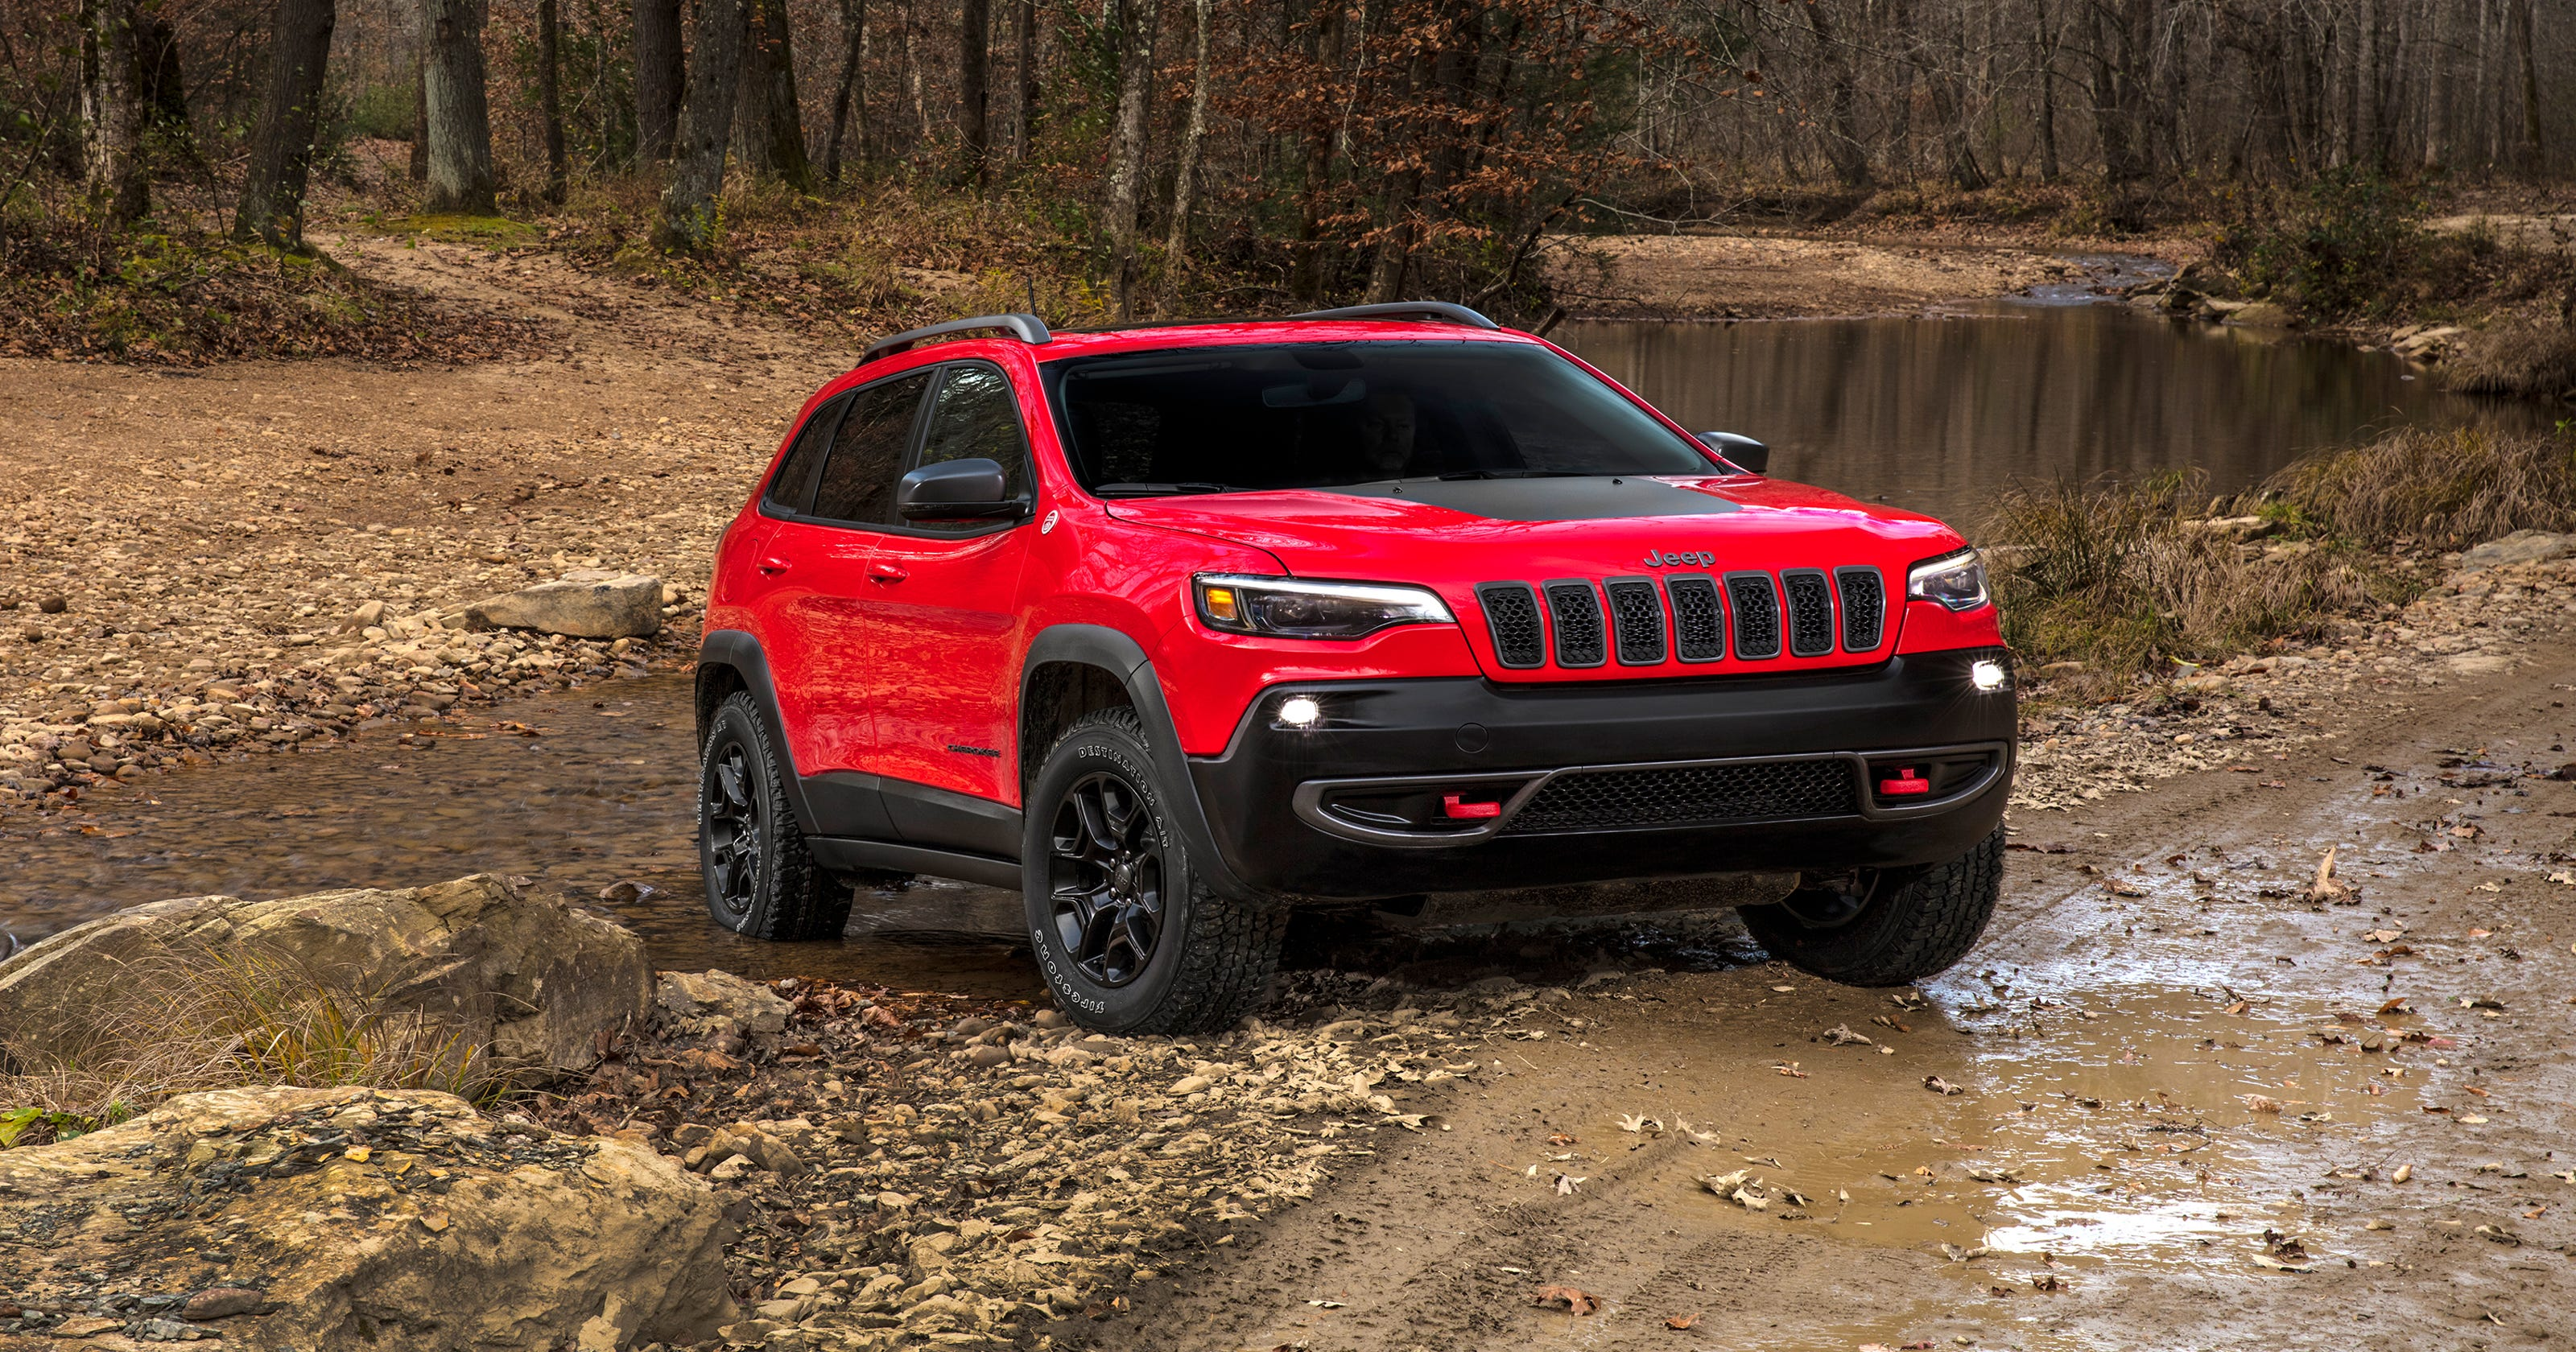 Jeep C Suv >> 2019 Jeep Cherokee A Sneak Peek Of The New Suv